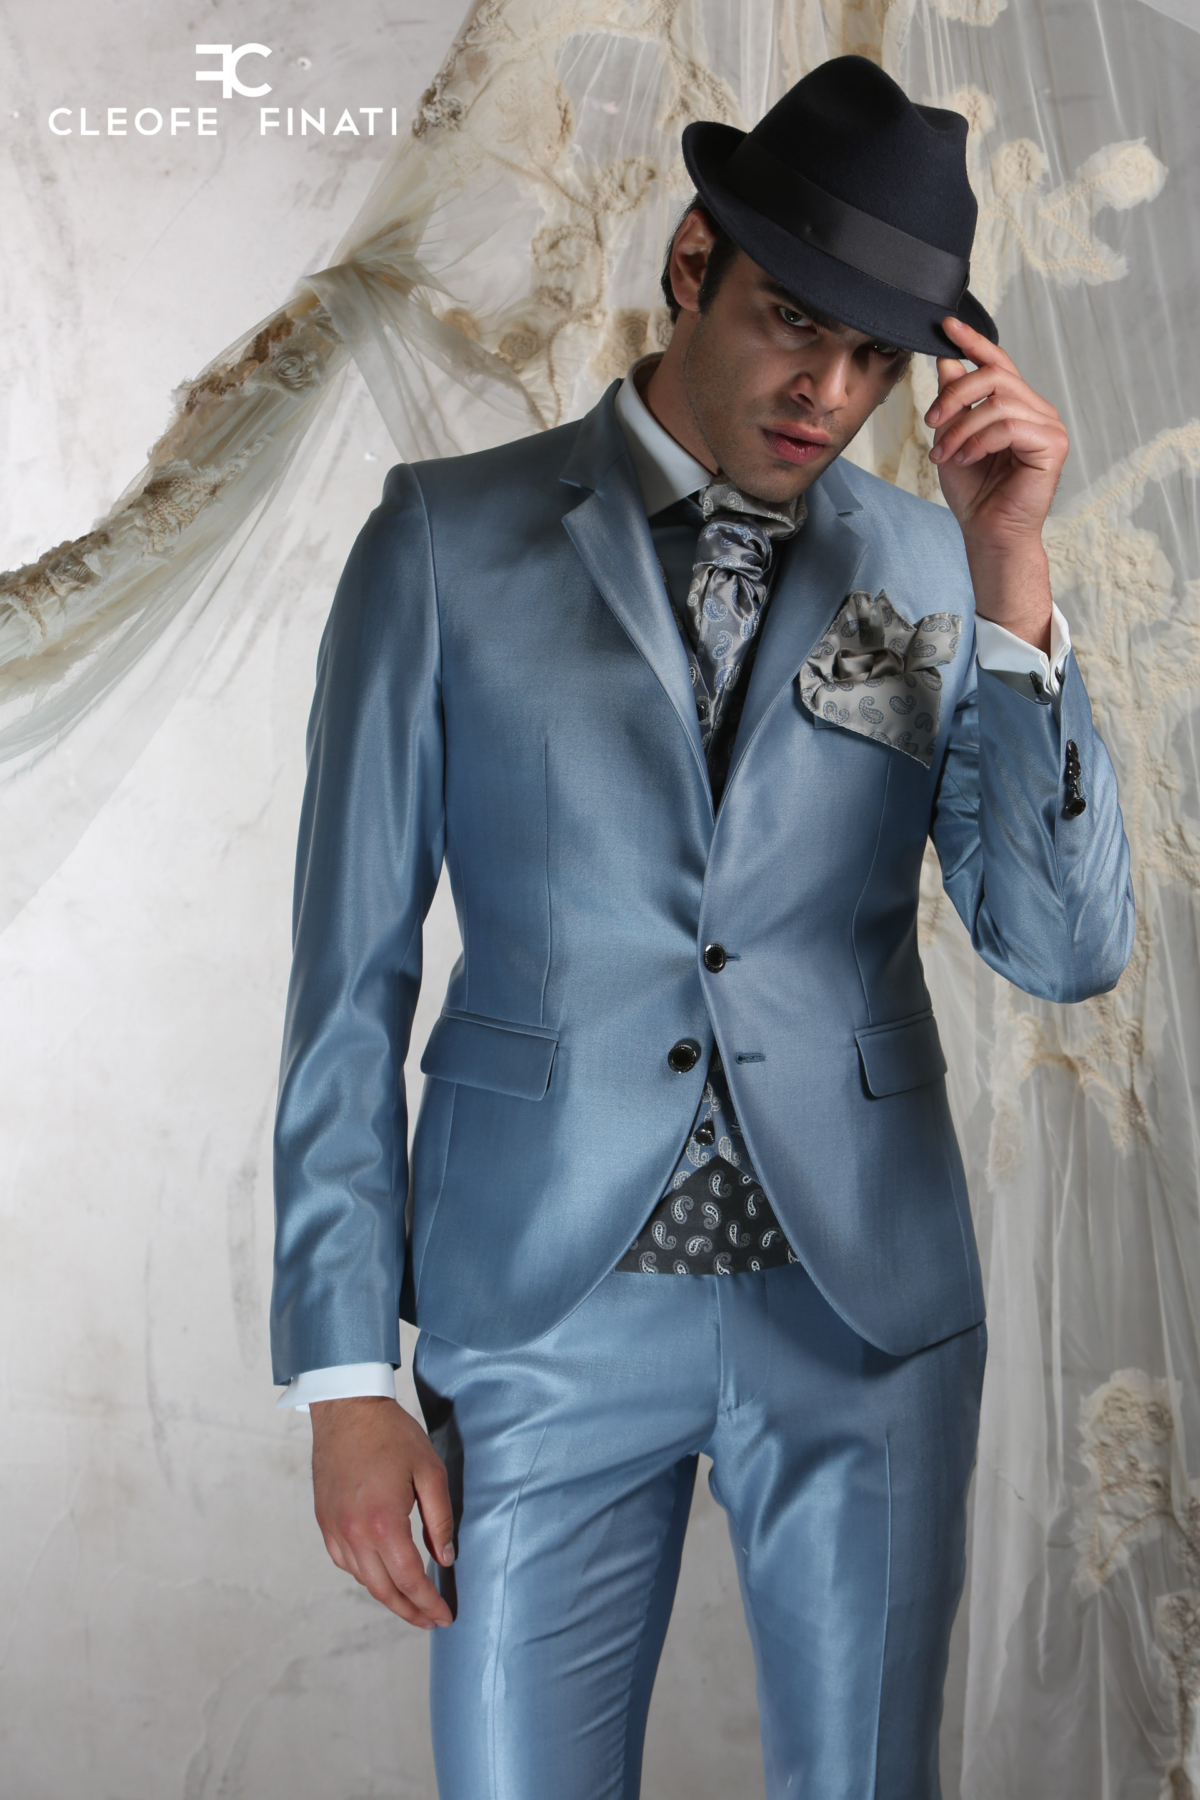 Stefano Sala wears a Cleofe Finati suit of the Couture Collection 2018